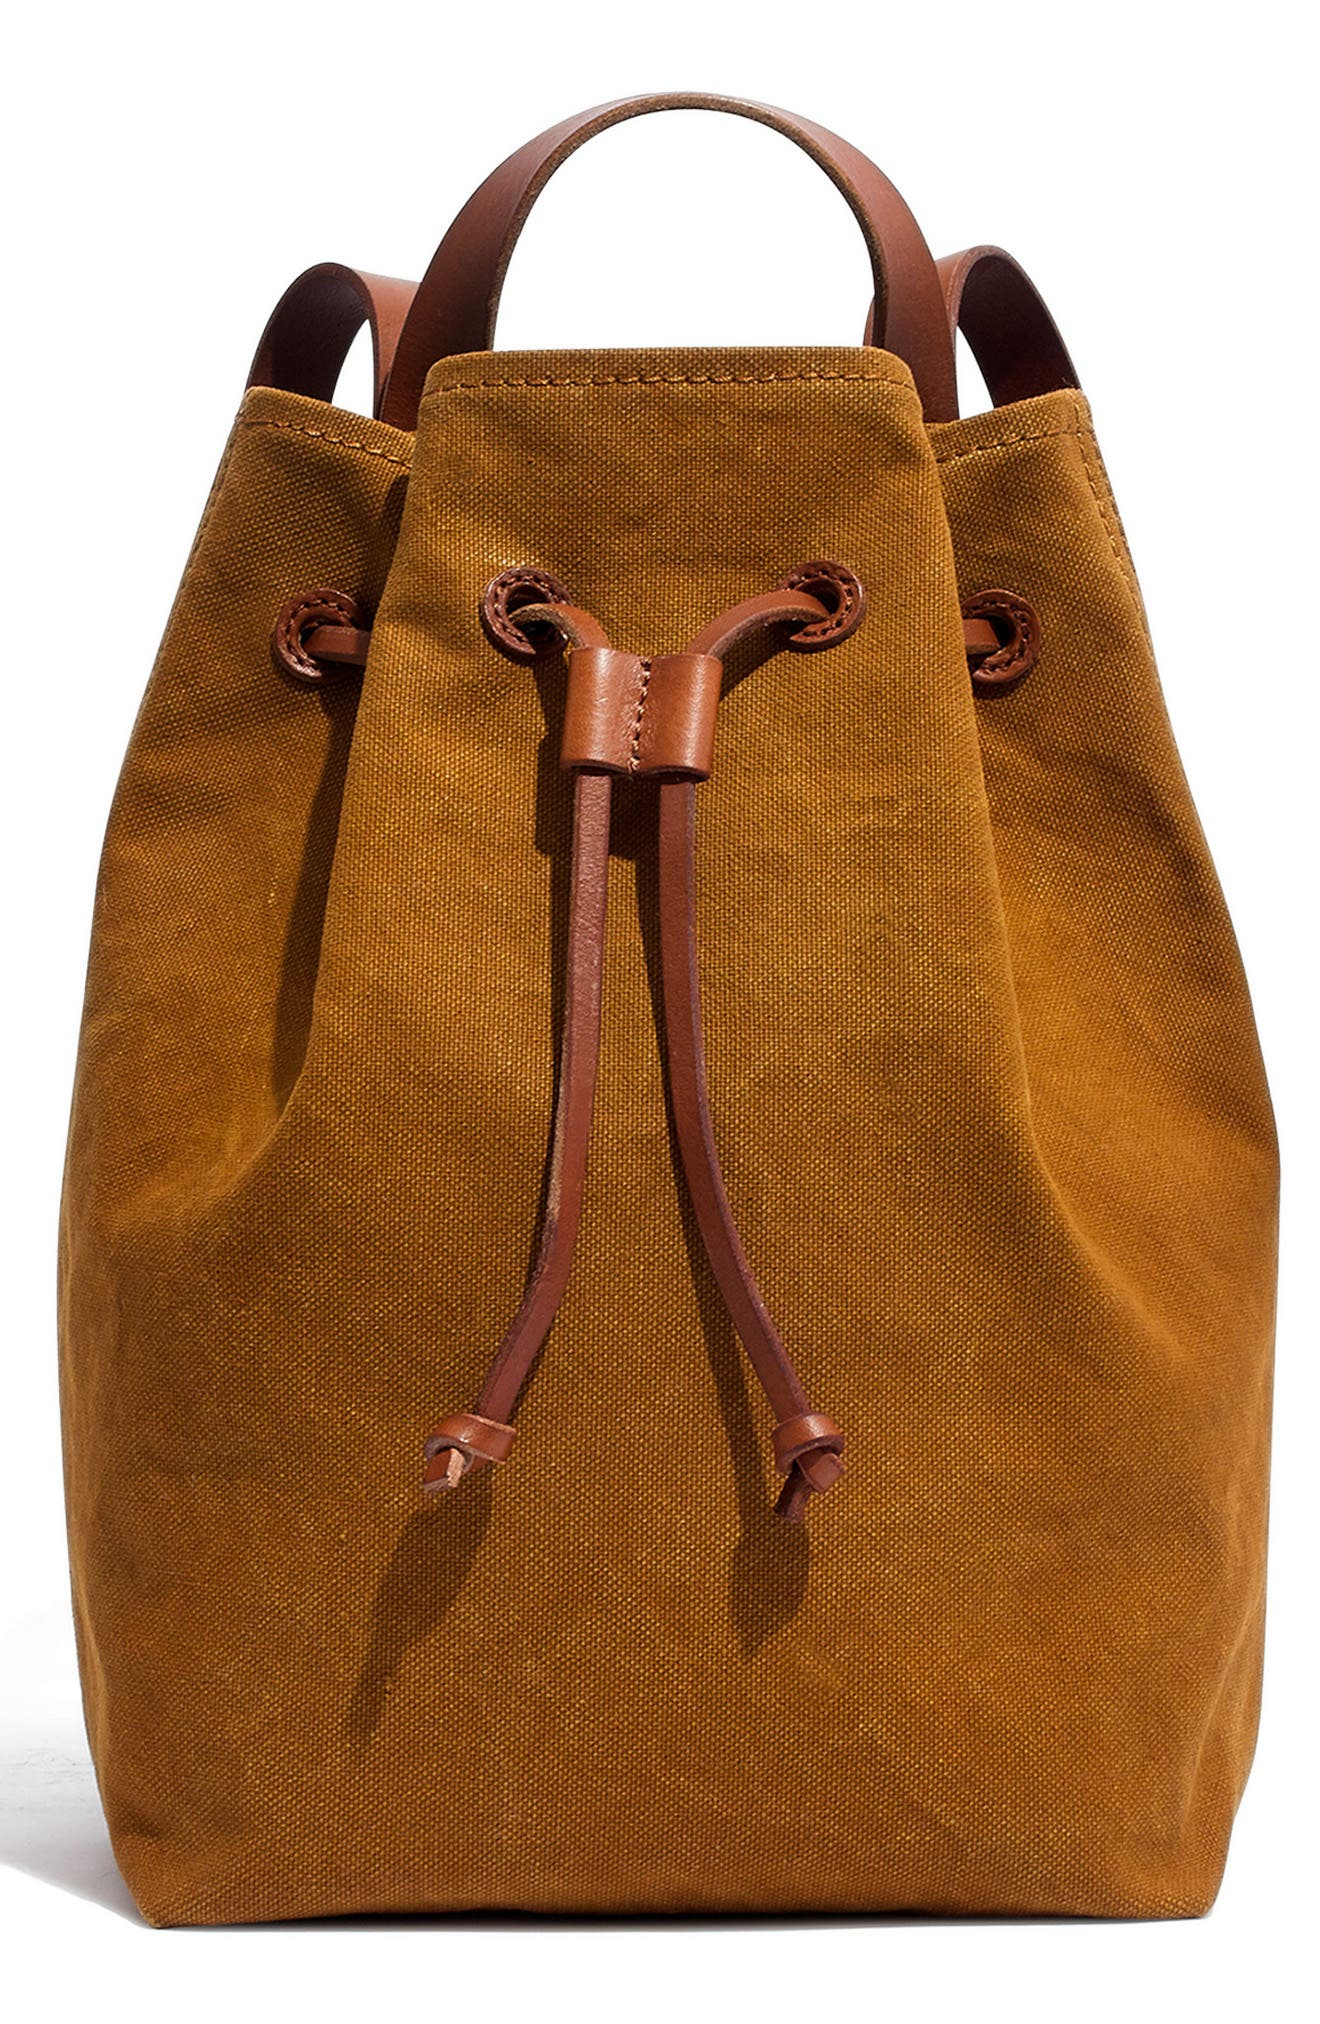 Somerset Canvas Backpack,                             Main thumbnail 1, color,                             200